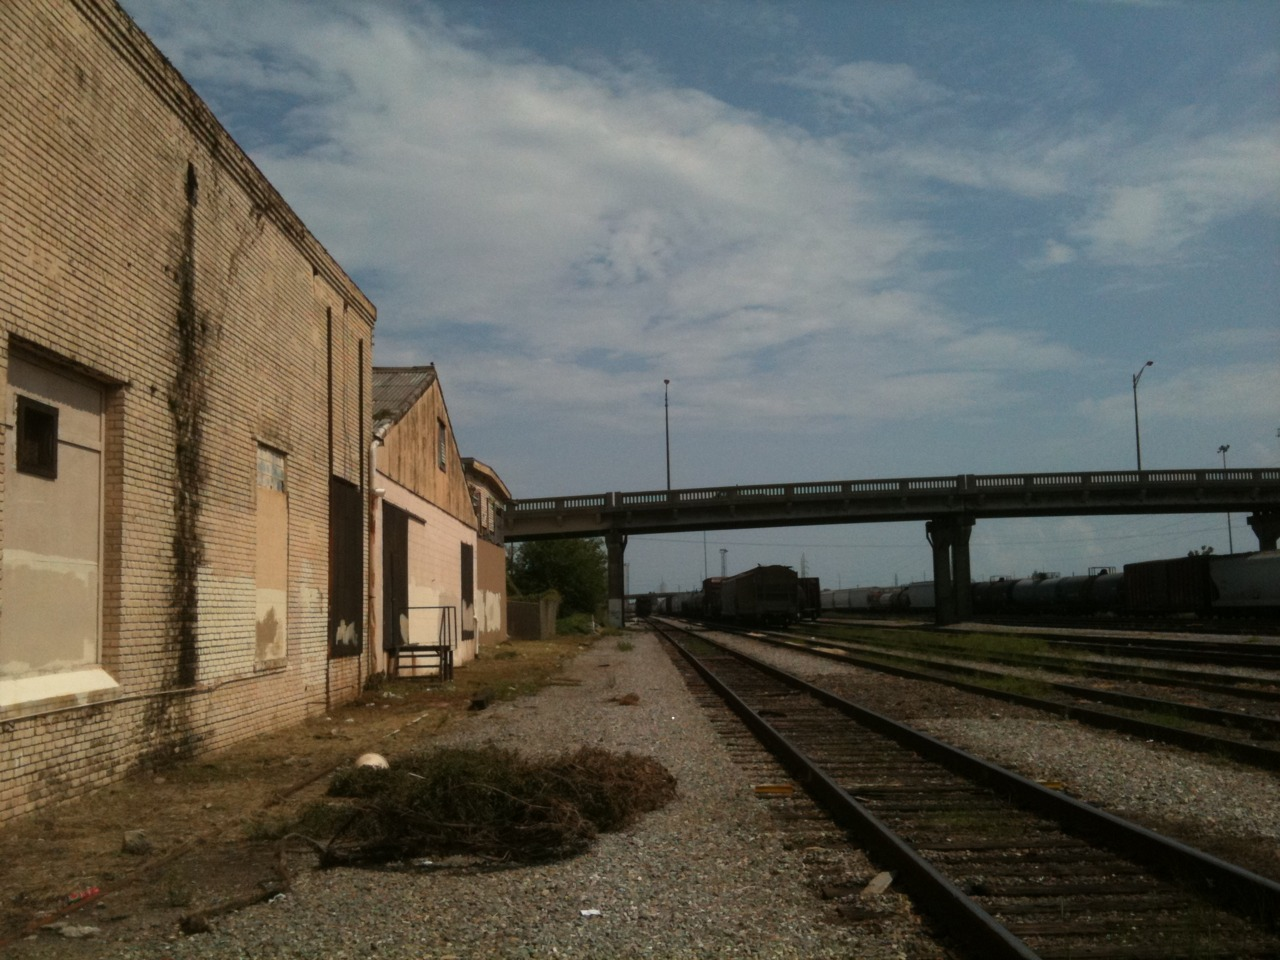 STUDIO SPACE BY THE TRACKS!